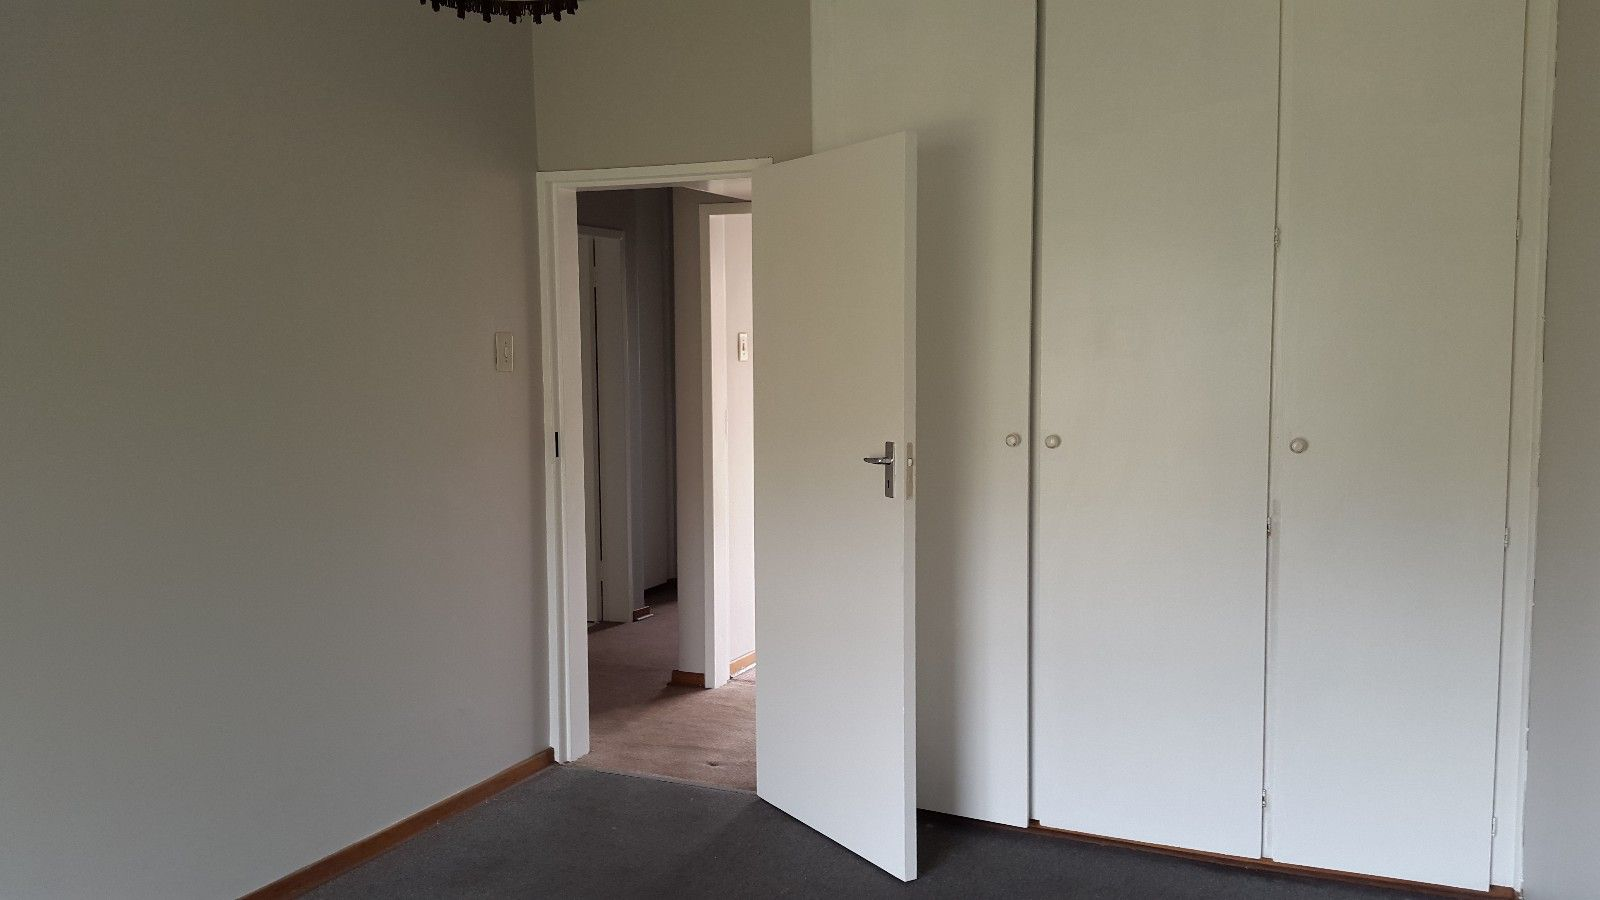 Potchefstroom Central property for sale. Ref No: 13457215. Picture no 14